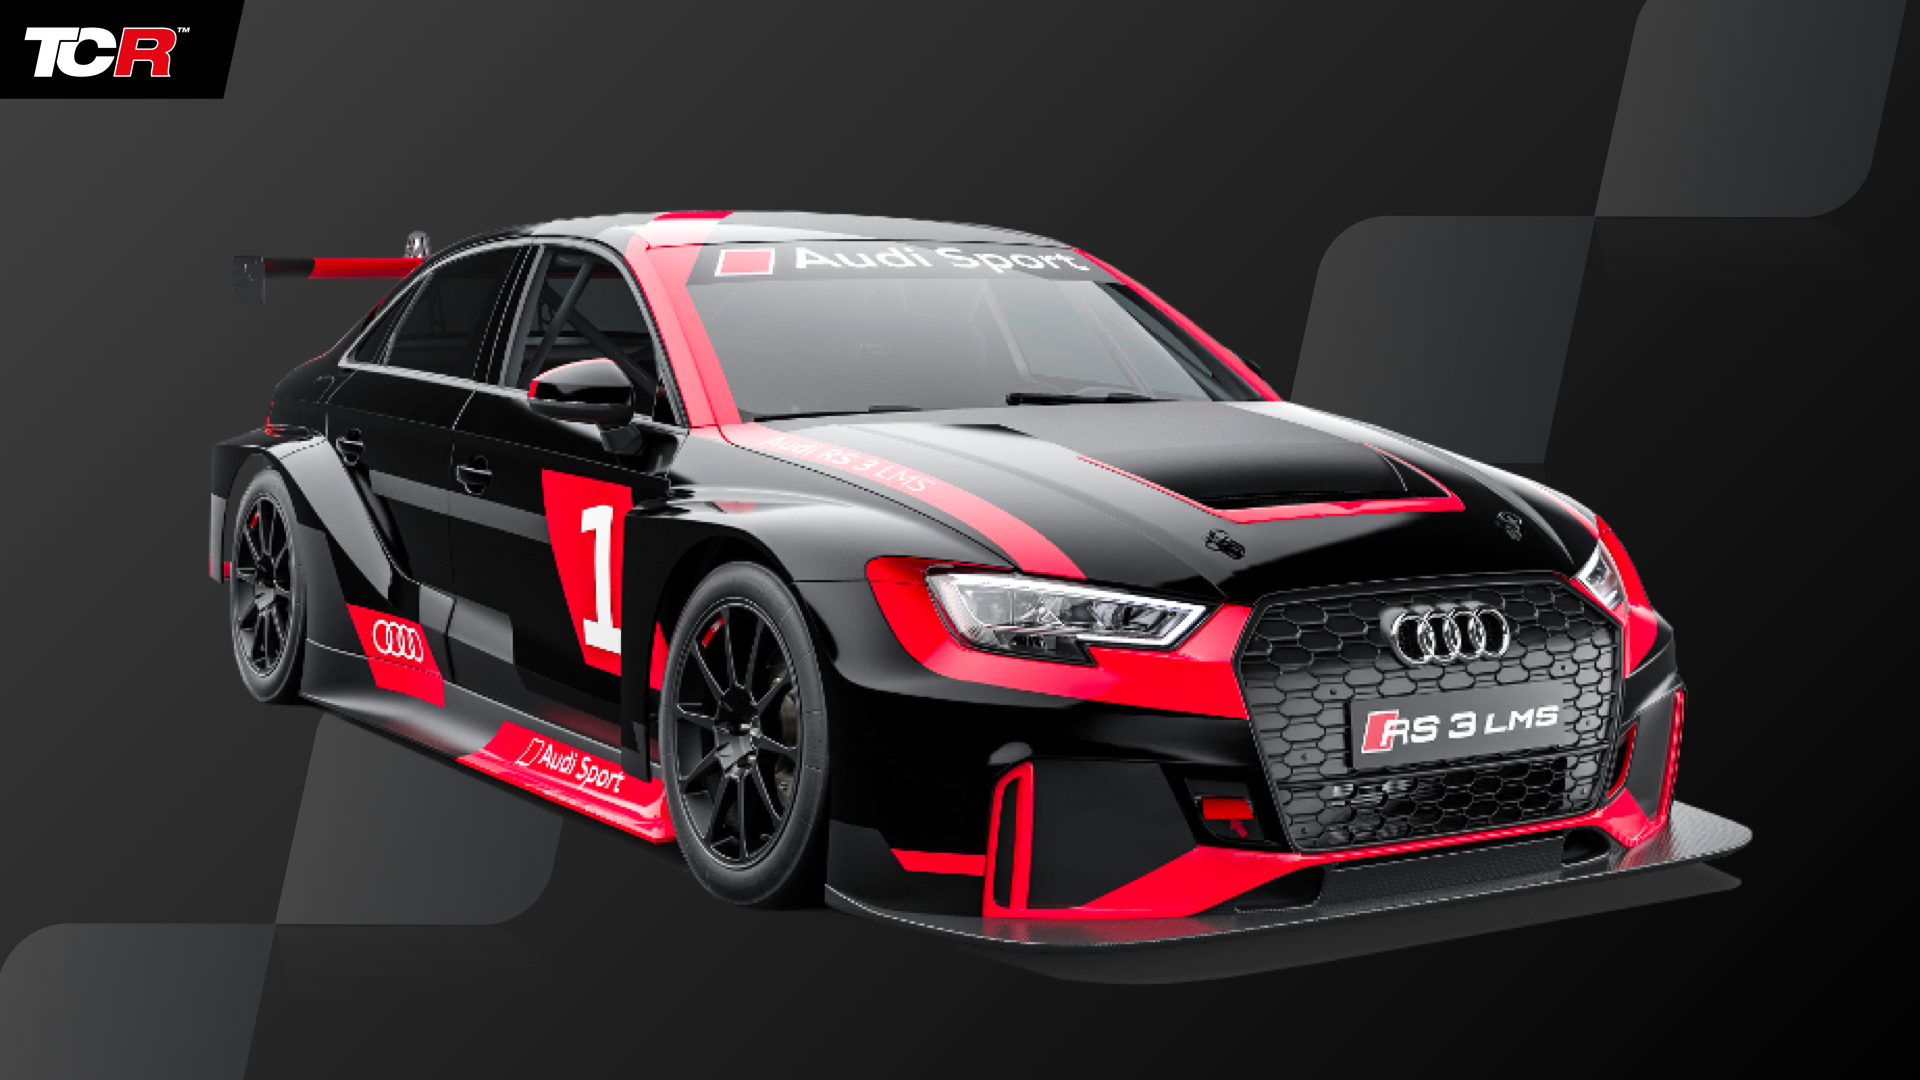 Audi RS 3 LMS SEQ